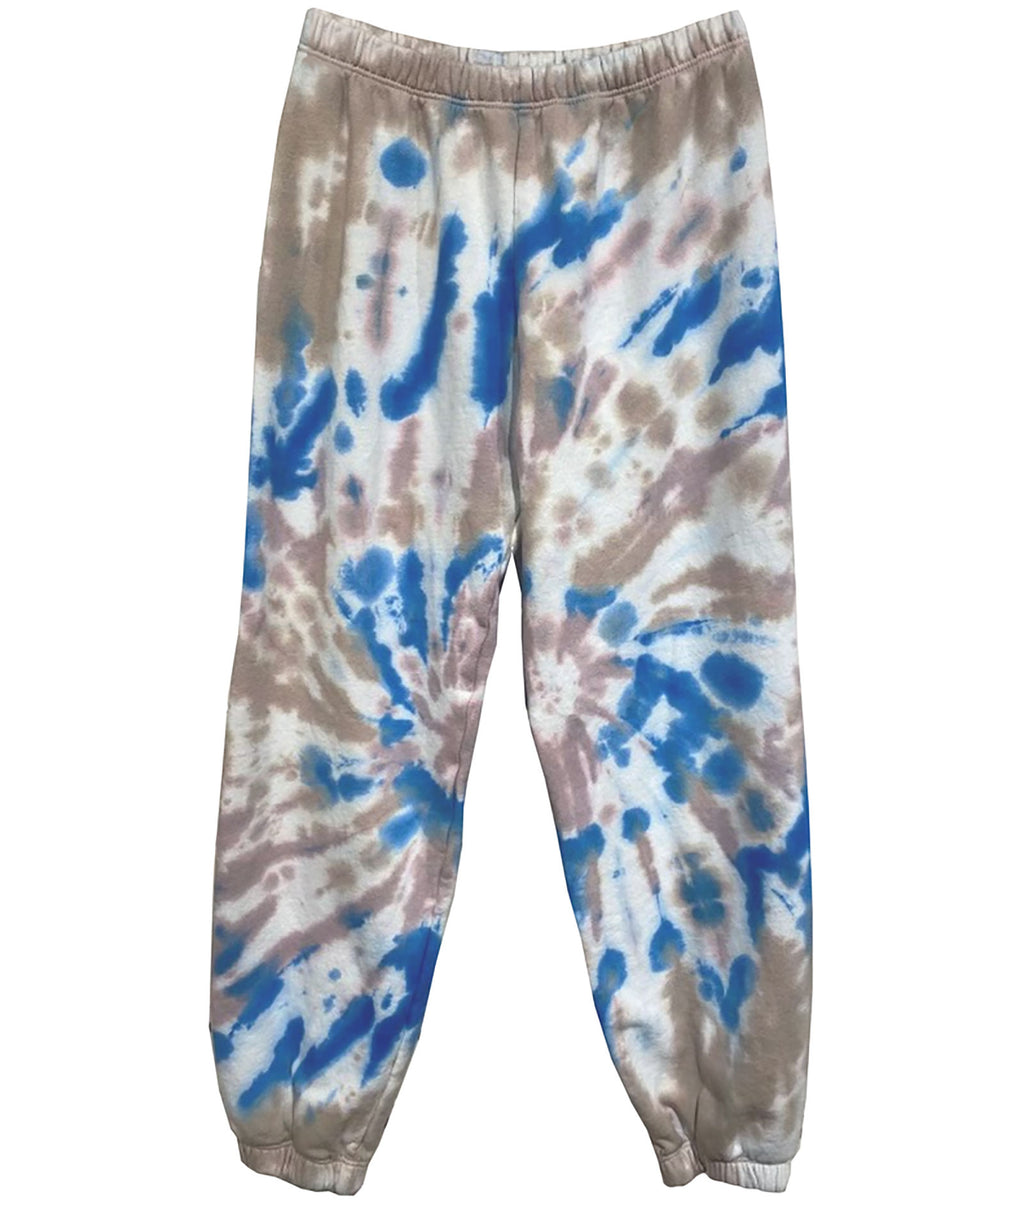 Me.n.u Girls Tie-Dye Natural & Blue Sweatpants